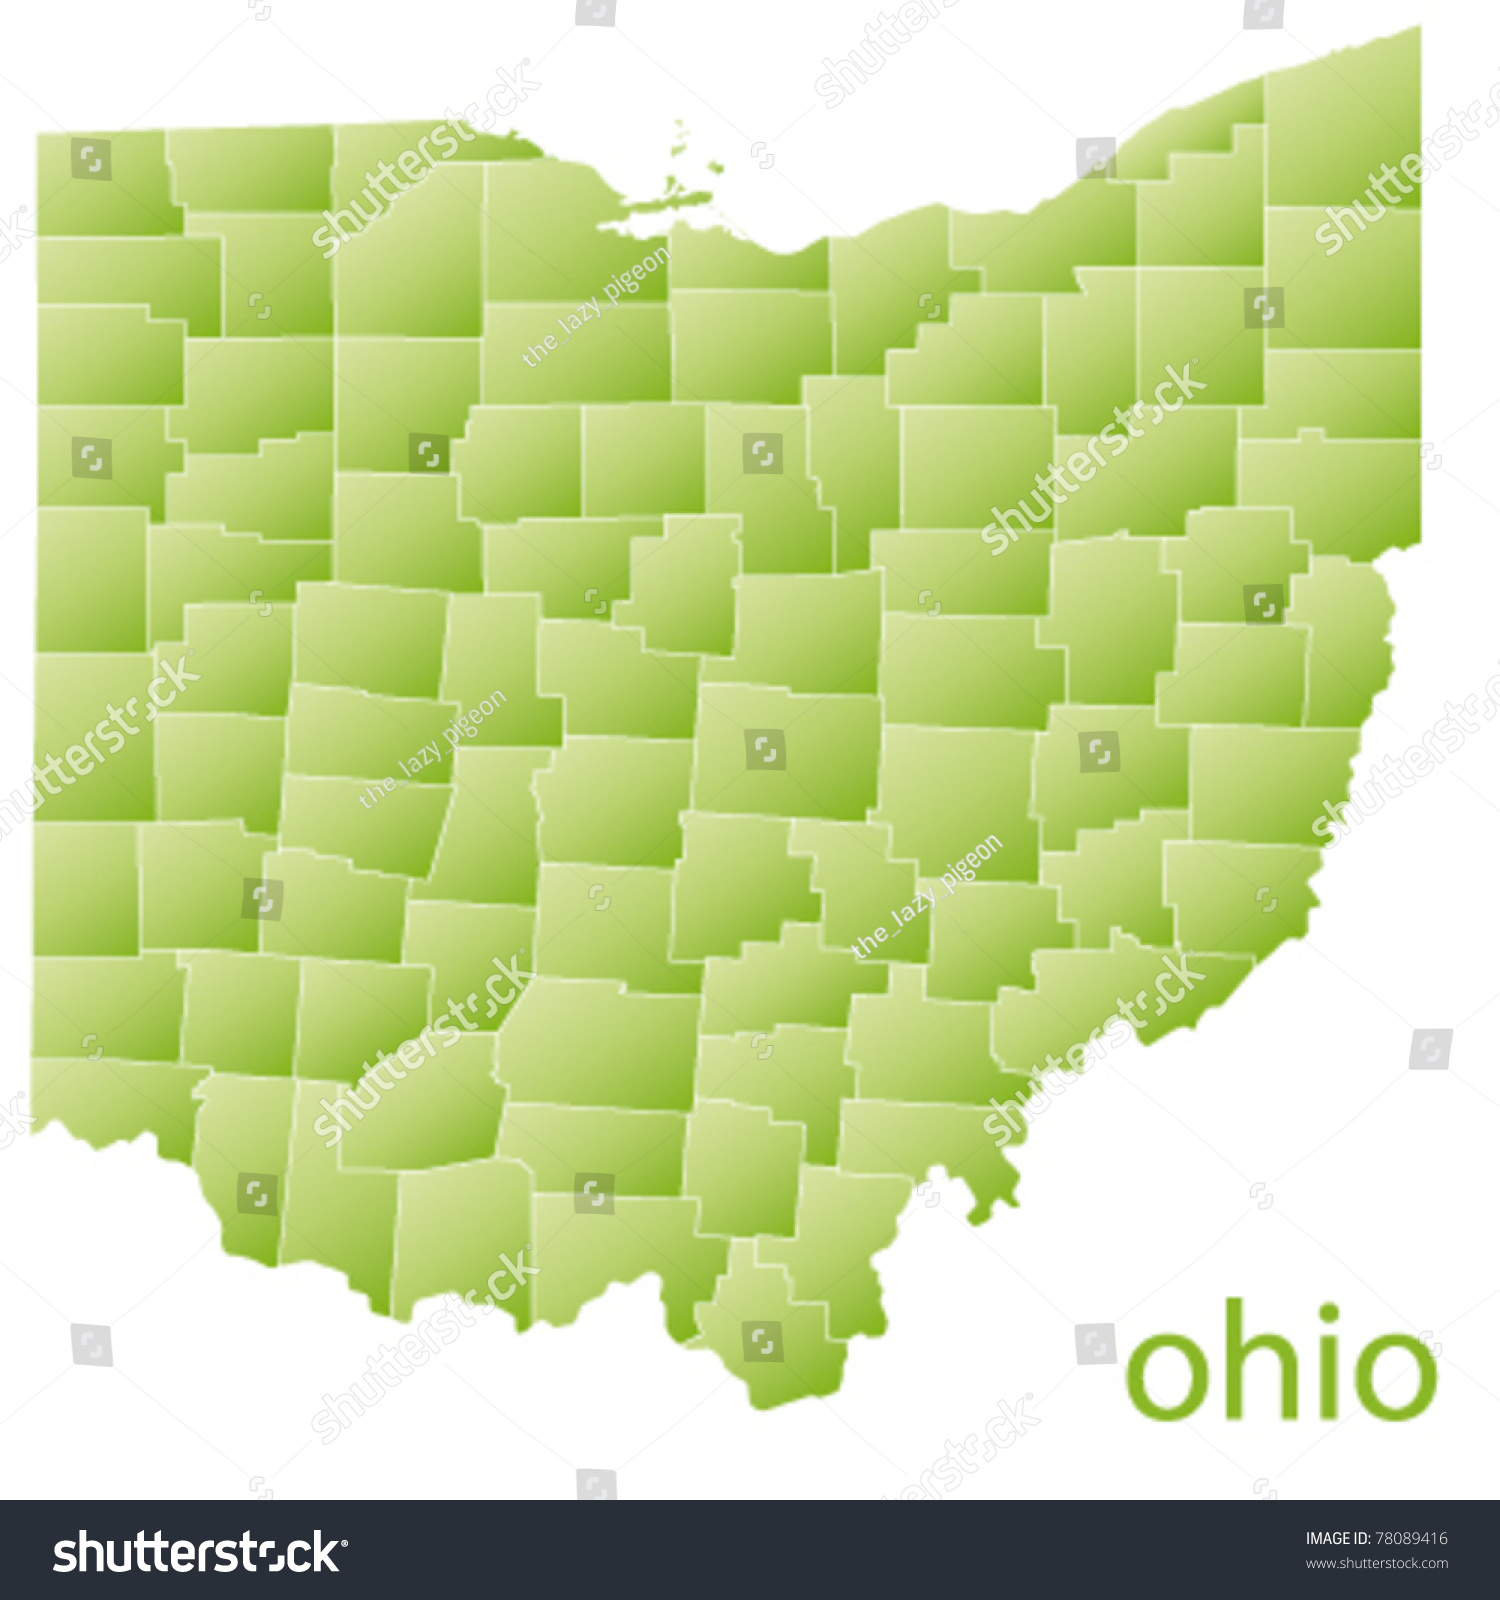 Map Ohio State Usa Stock Vector Shutterstock - Ohio usa map